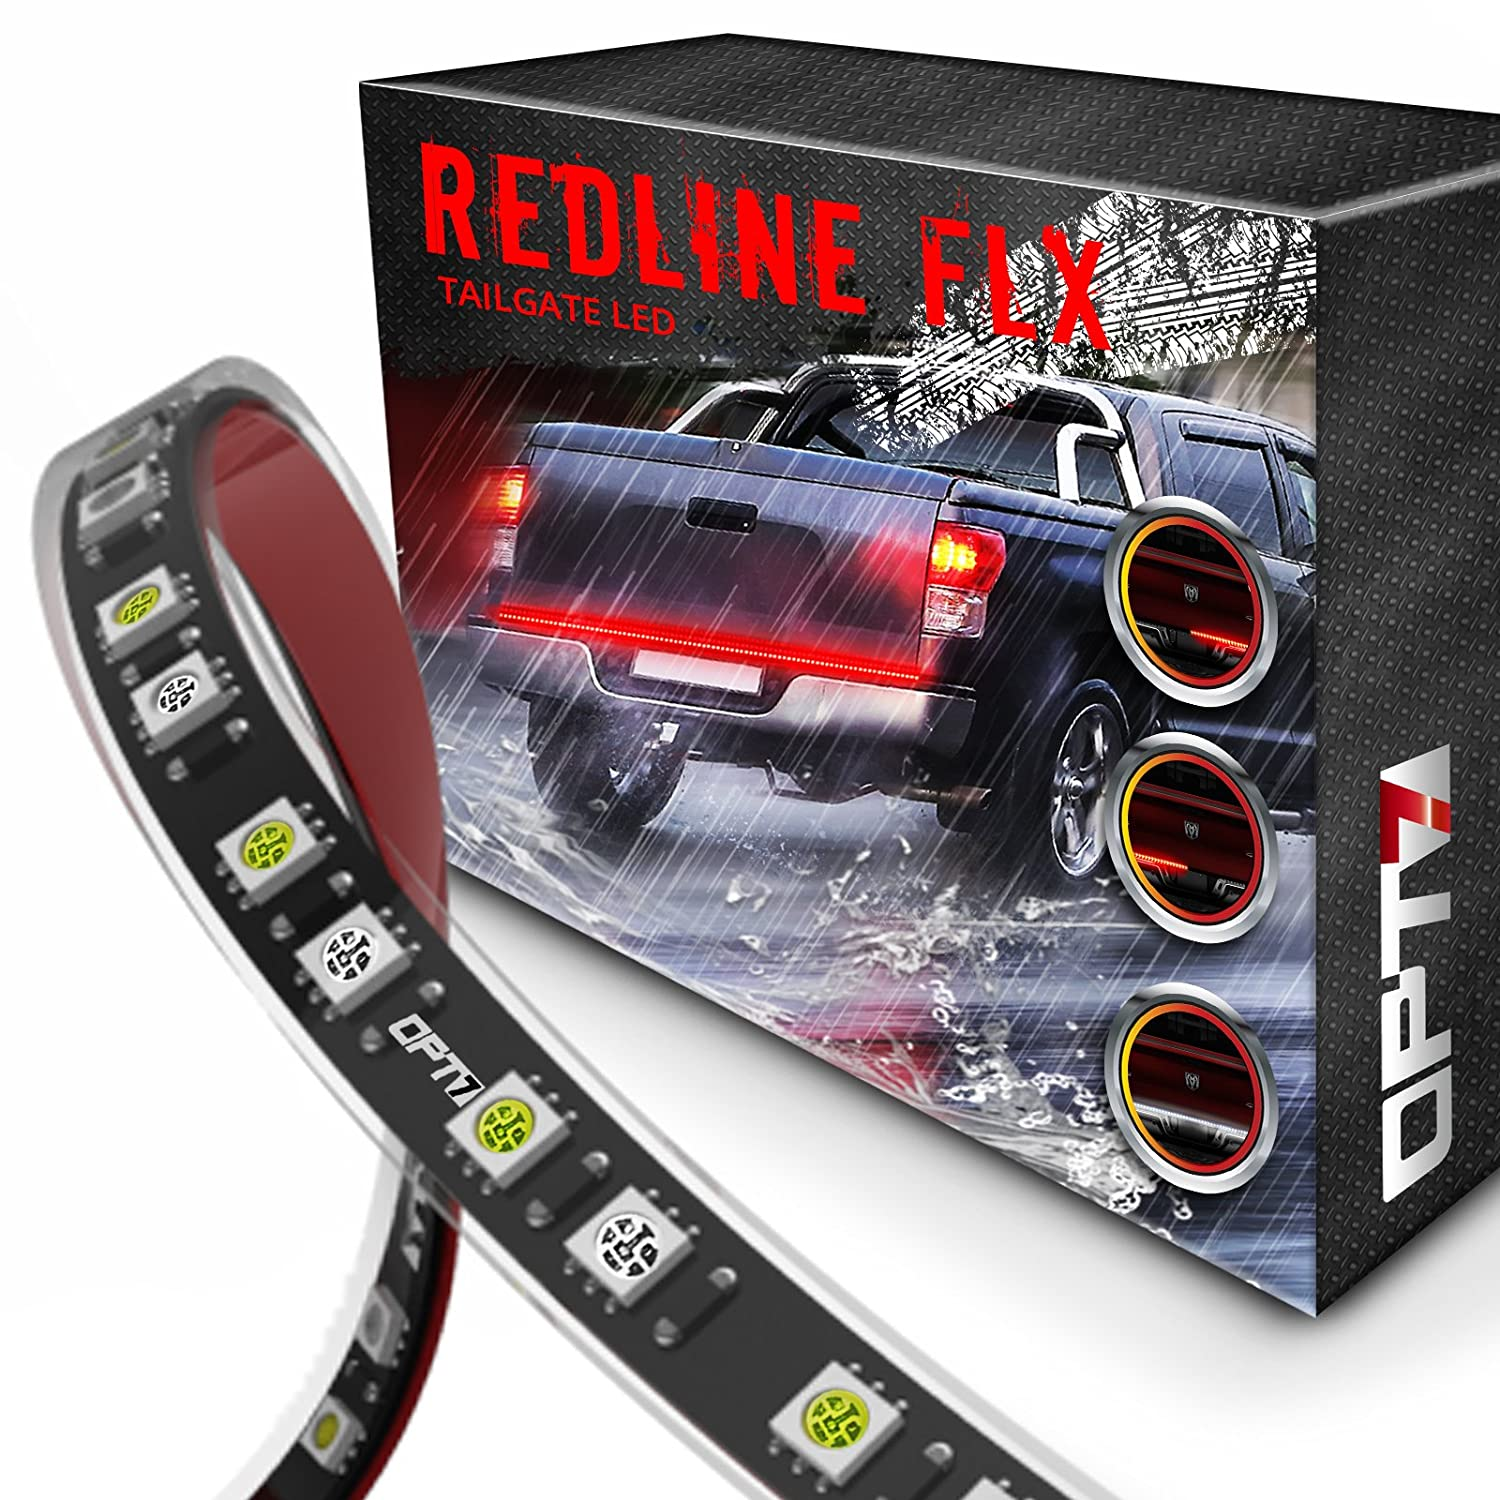 OPT7 48' Redline Flexible LED Tailgate Light Bar - TriCore LED - Weatherproof No-Drill Install ?Full Featured Reverse Brake Running w/RED Turn Signal 2yr Warranty